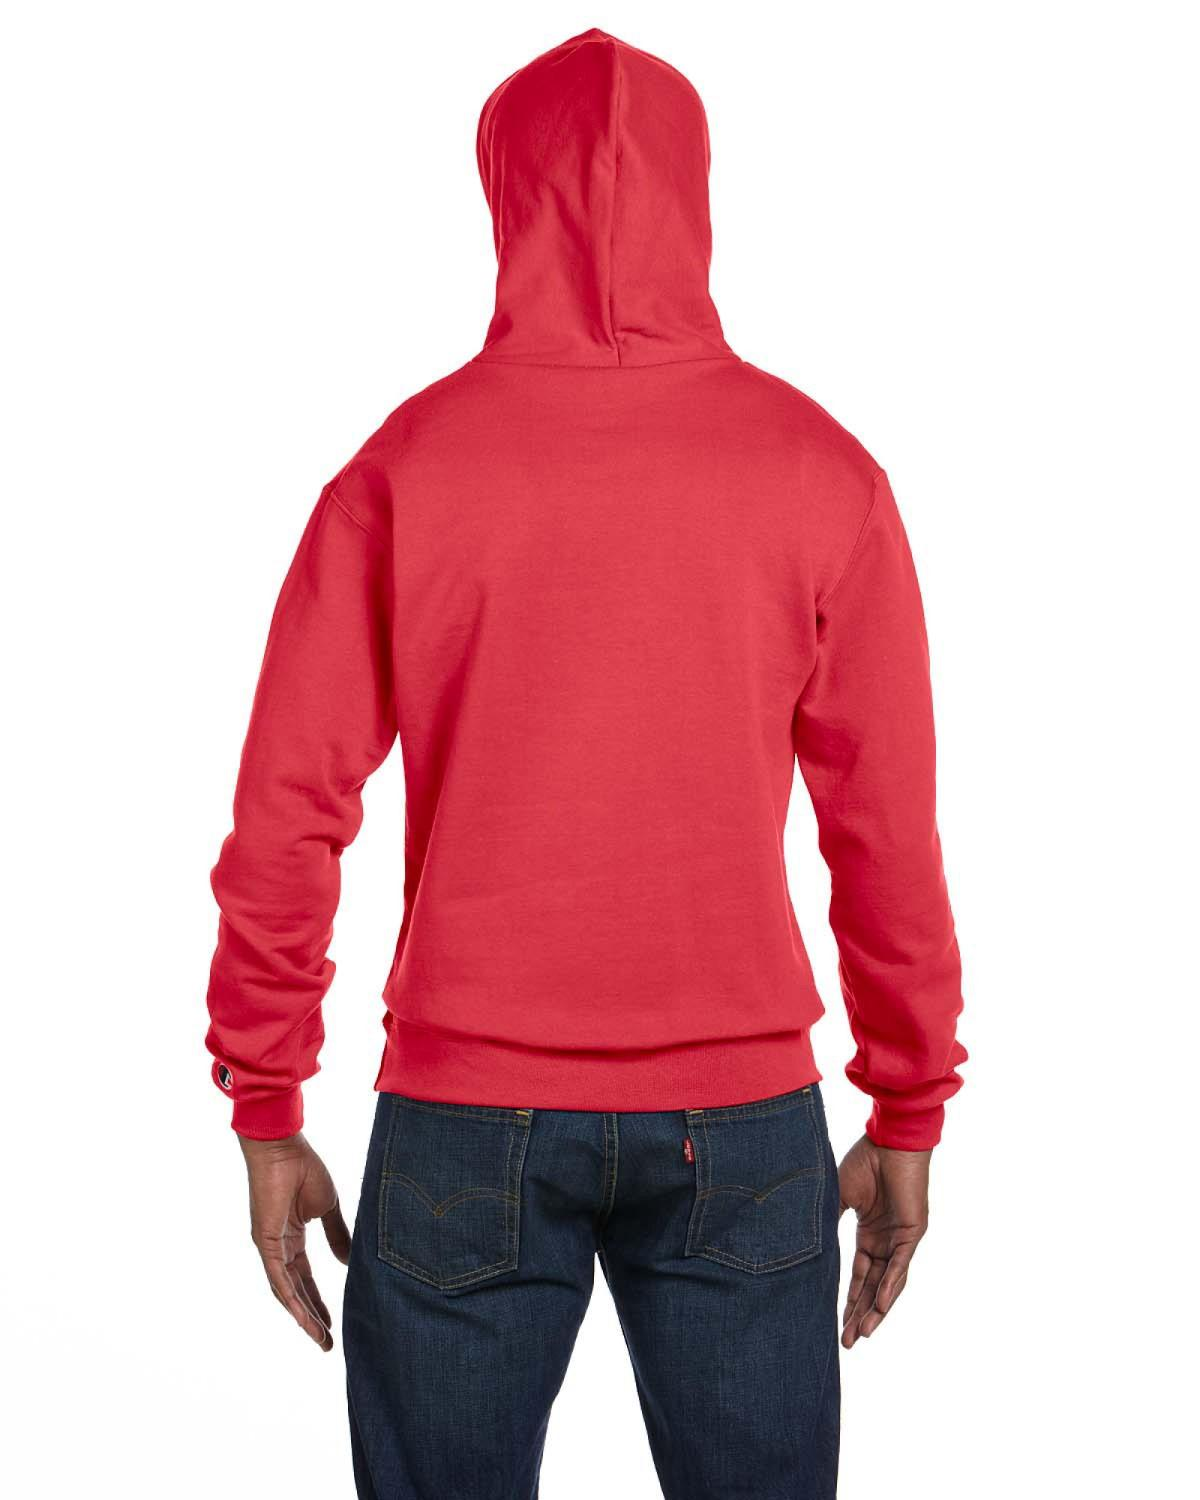 898ae474a5ef Lyst - Champion Double Dry Action Fleece Pullover Hood in Red for Men -  Save 21.05263157894737%